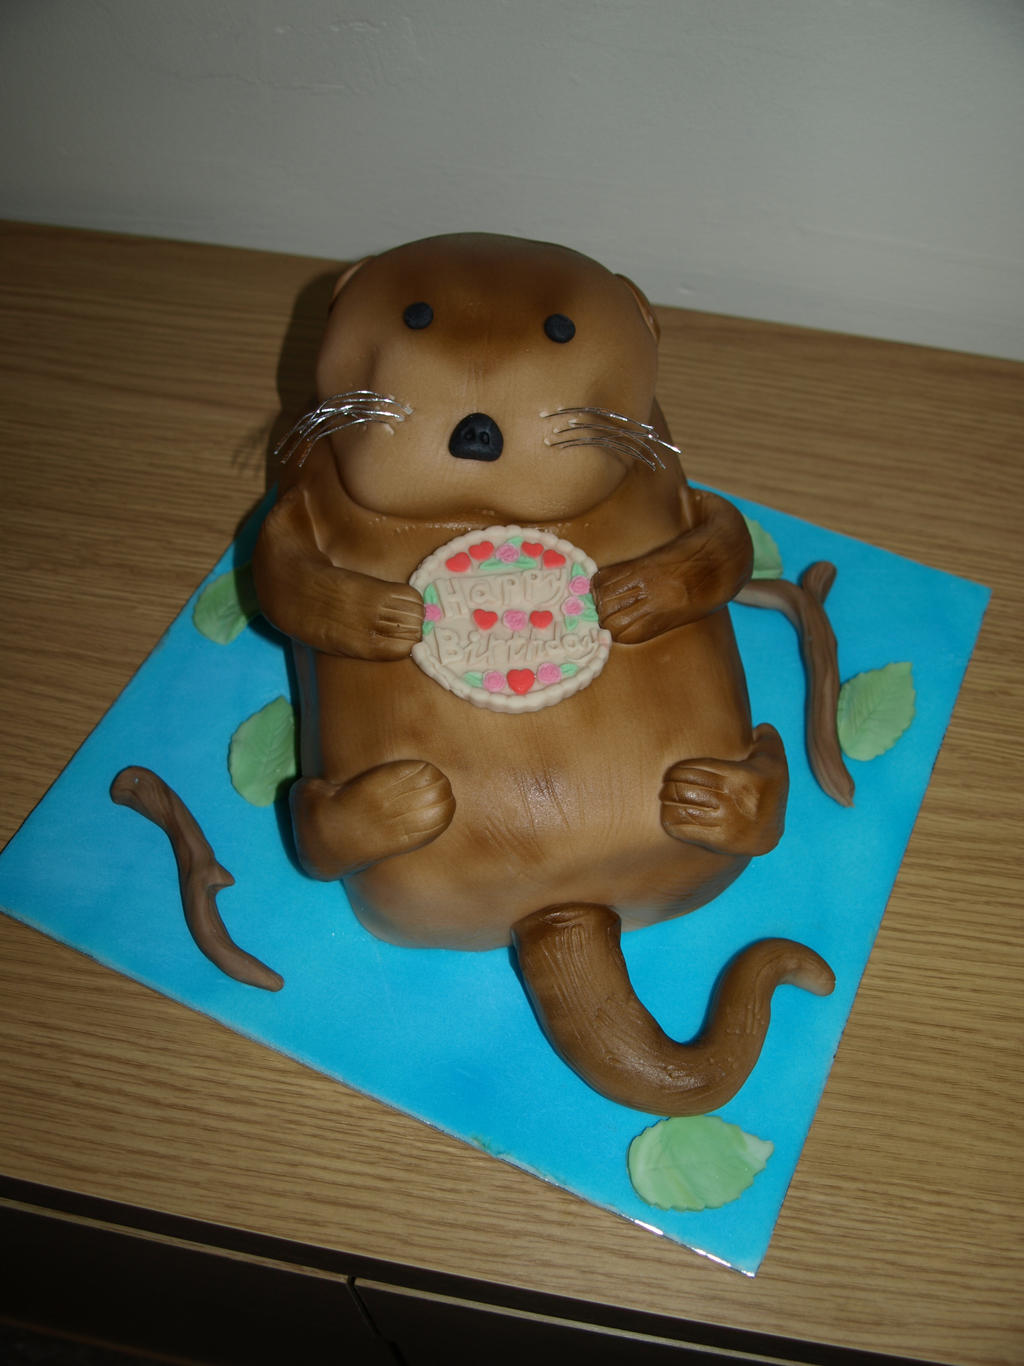 Otter Cake Cake Ideas And Designs